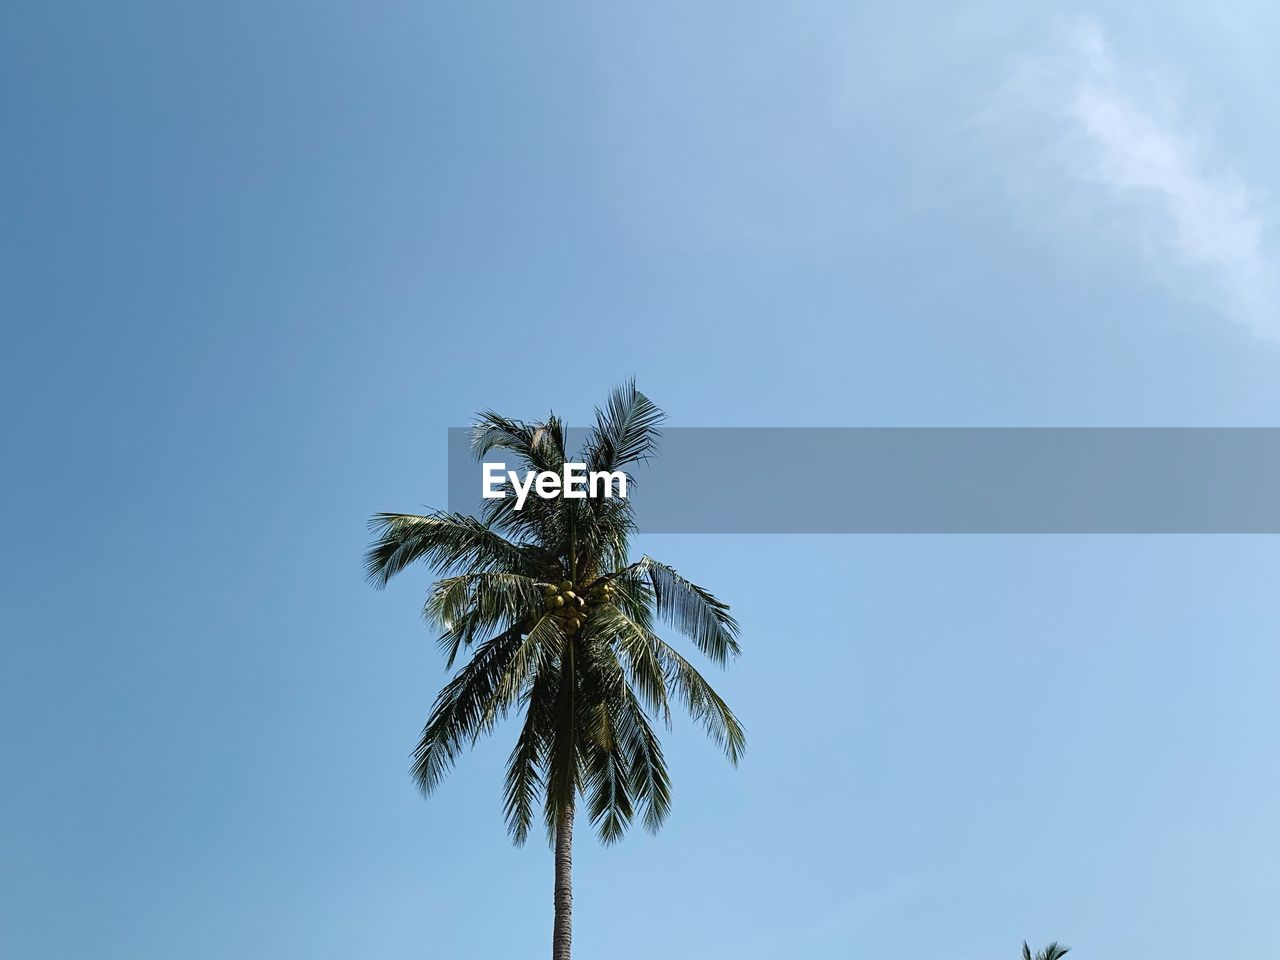 sky, palm tree, tree, plant, tropical climate, low angle view, growth, beauty in nature, no people, tranquility, day, nature, blue, copy space, outdoors, cloud - sky, tall - high, scenics - nature, coconut palm tree, tropical tree, palm leaf